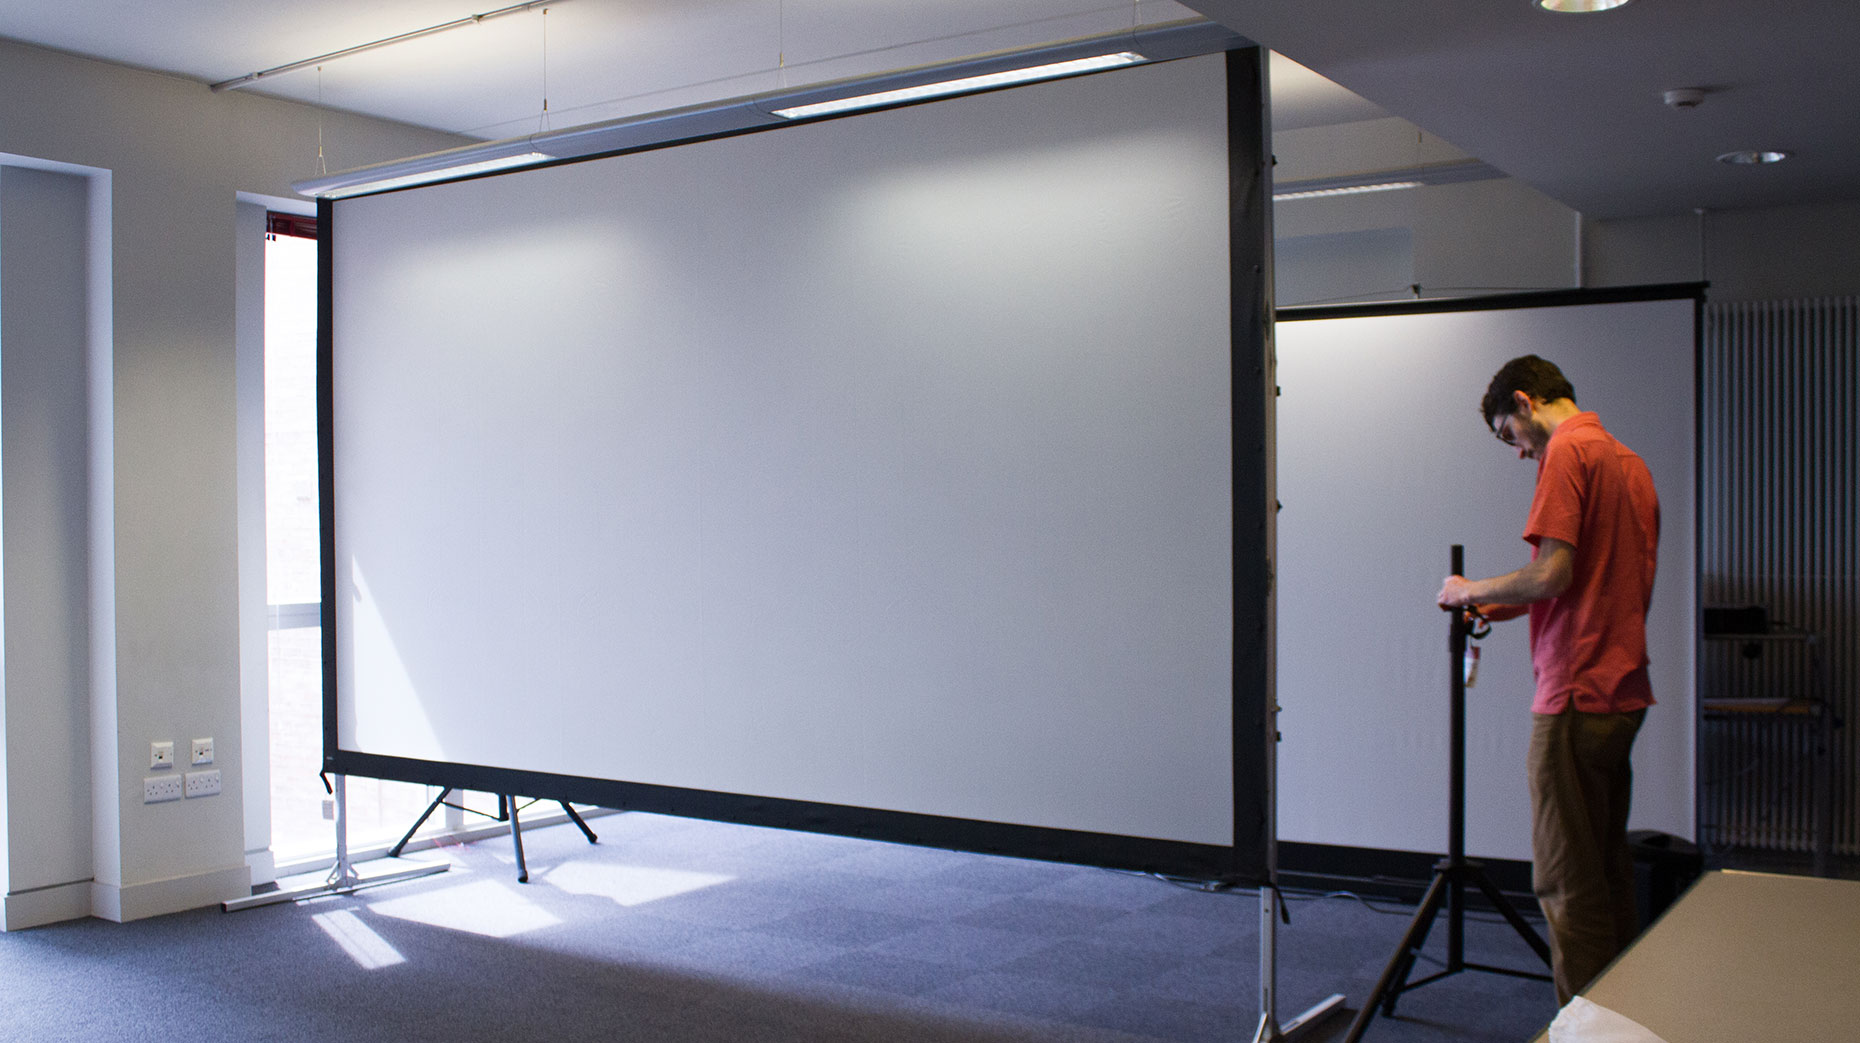 The cinemas will be popping up in village halls and community spaces during a one year pilot.